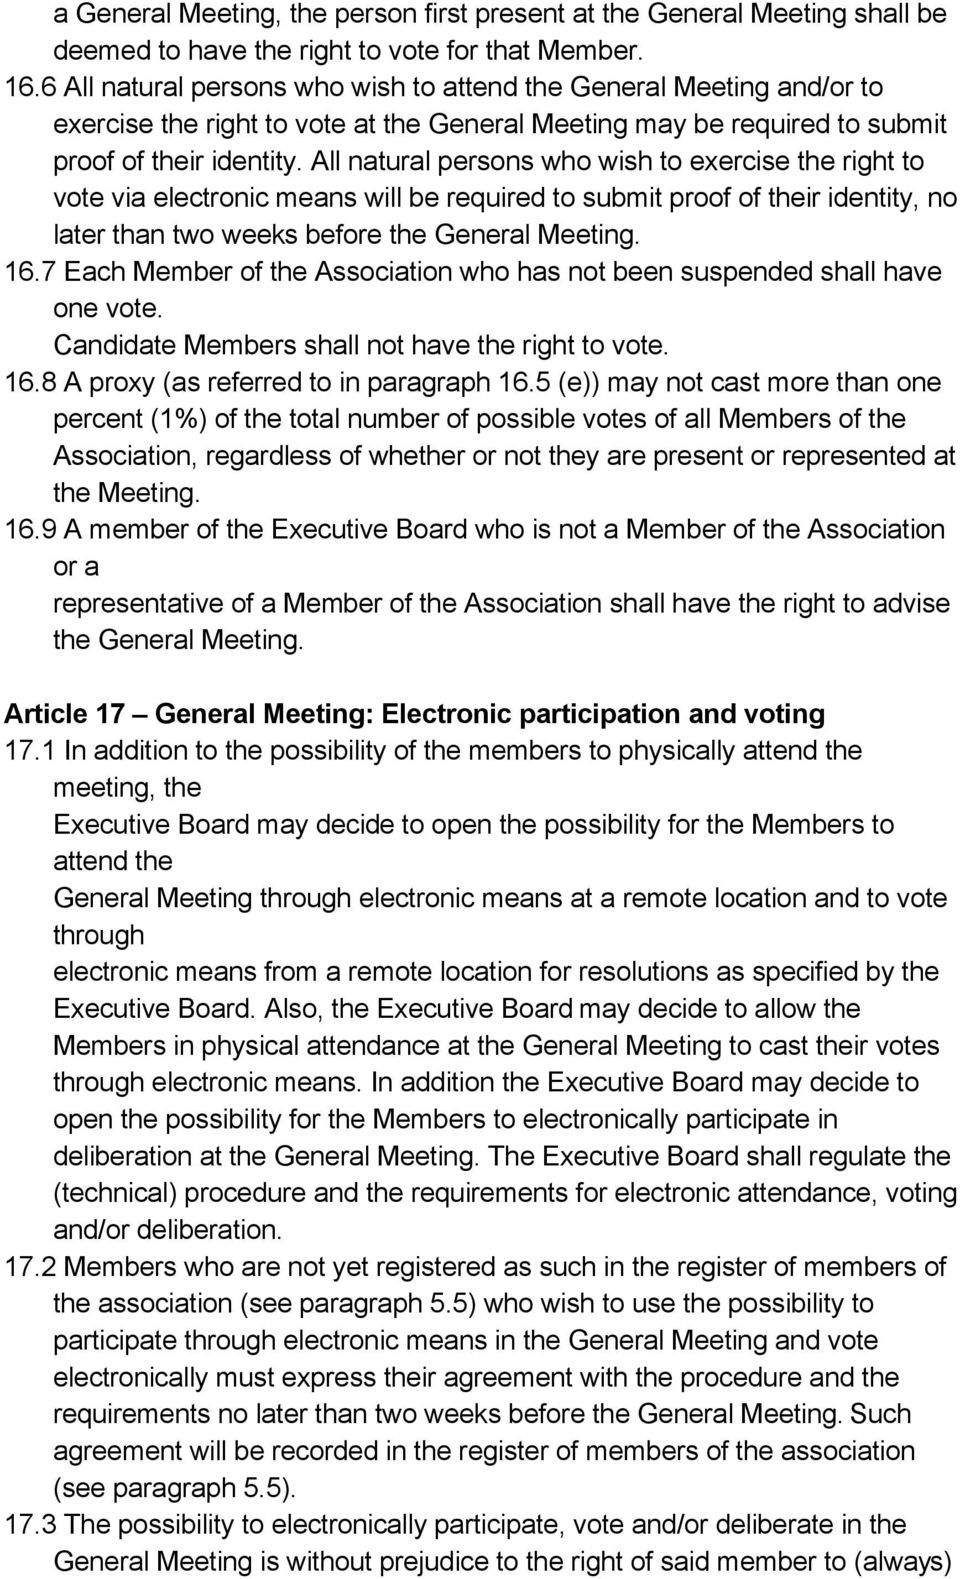 All natural persons who wish to exercise the right to vote via electronic means will be required to submit proof of their identity, no later than two weeks before the General Meeting. 16.